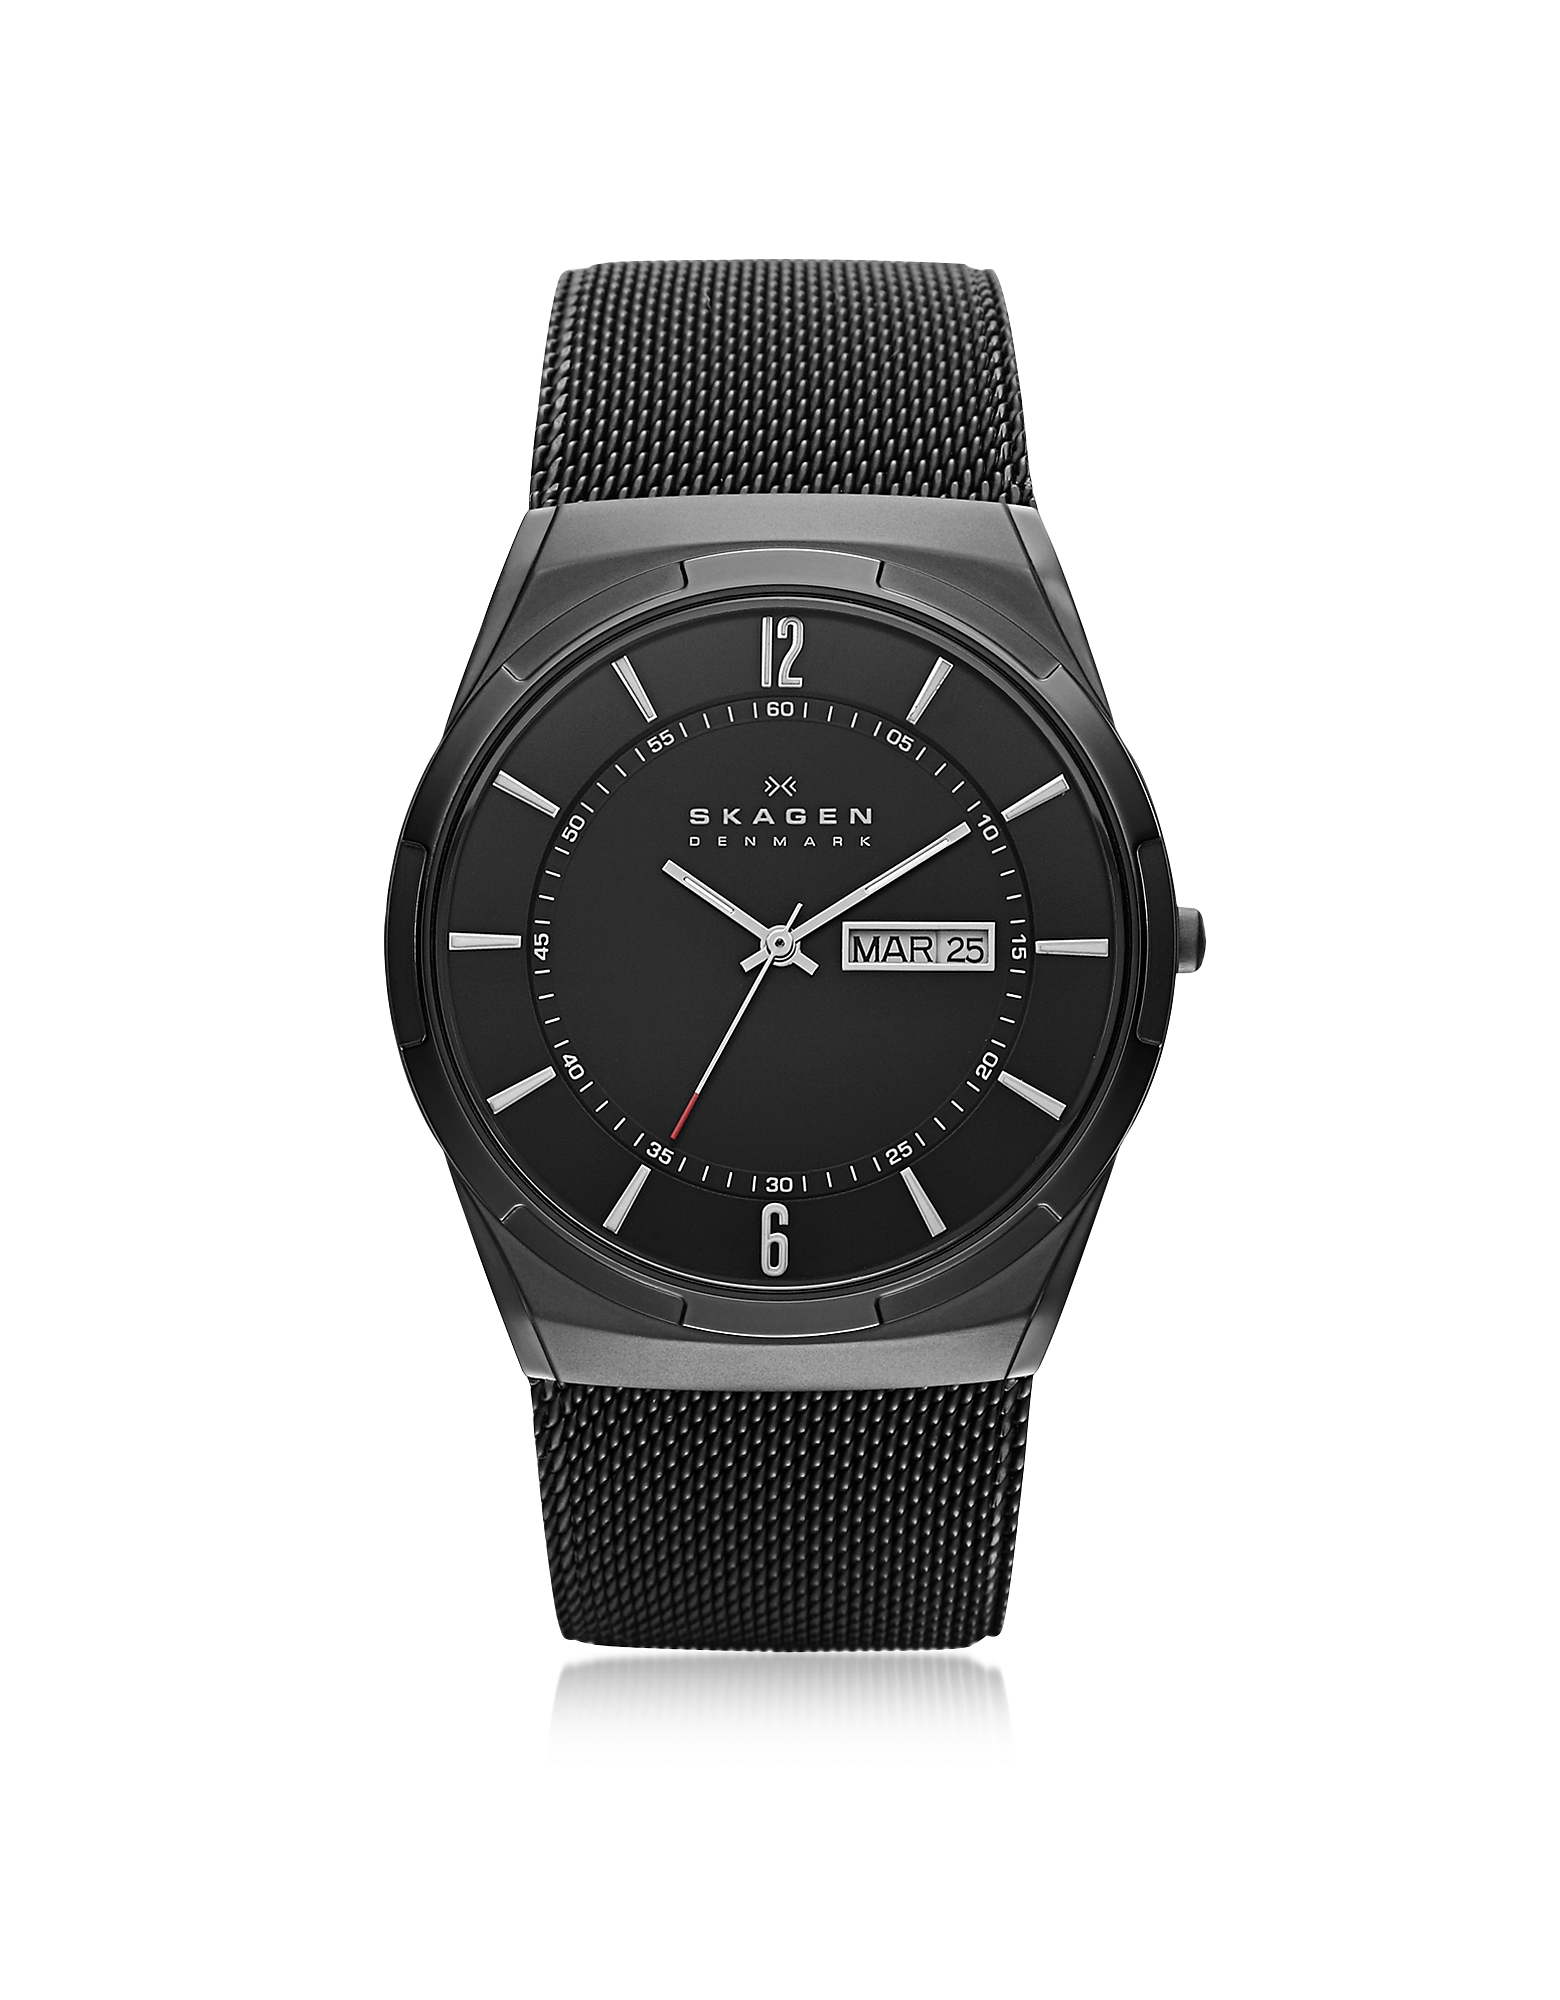 Skagen Men's Watches, Melbye Black Stainless Steel Mesh and Titanium Case Multifunction Men's Watch